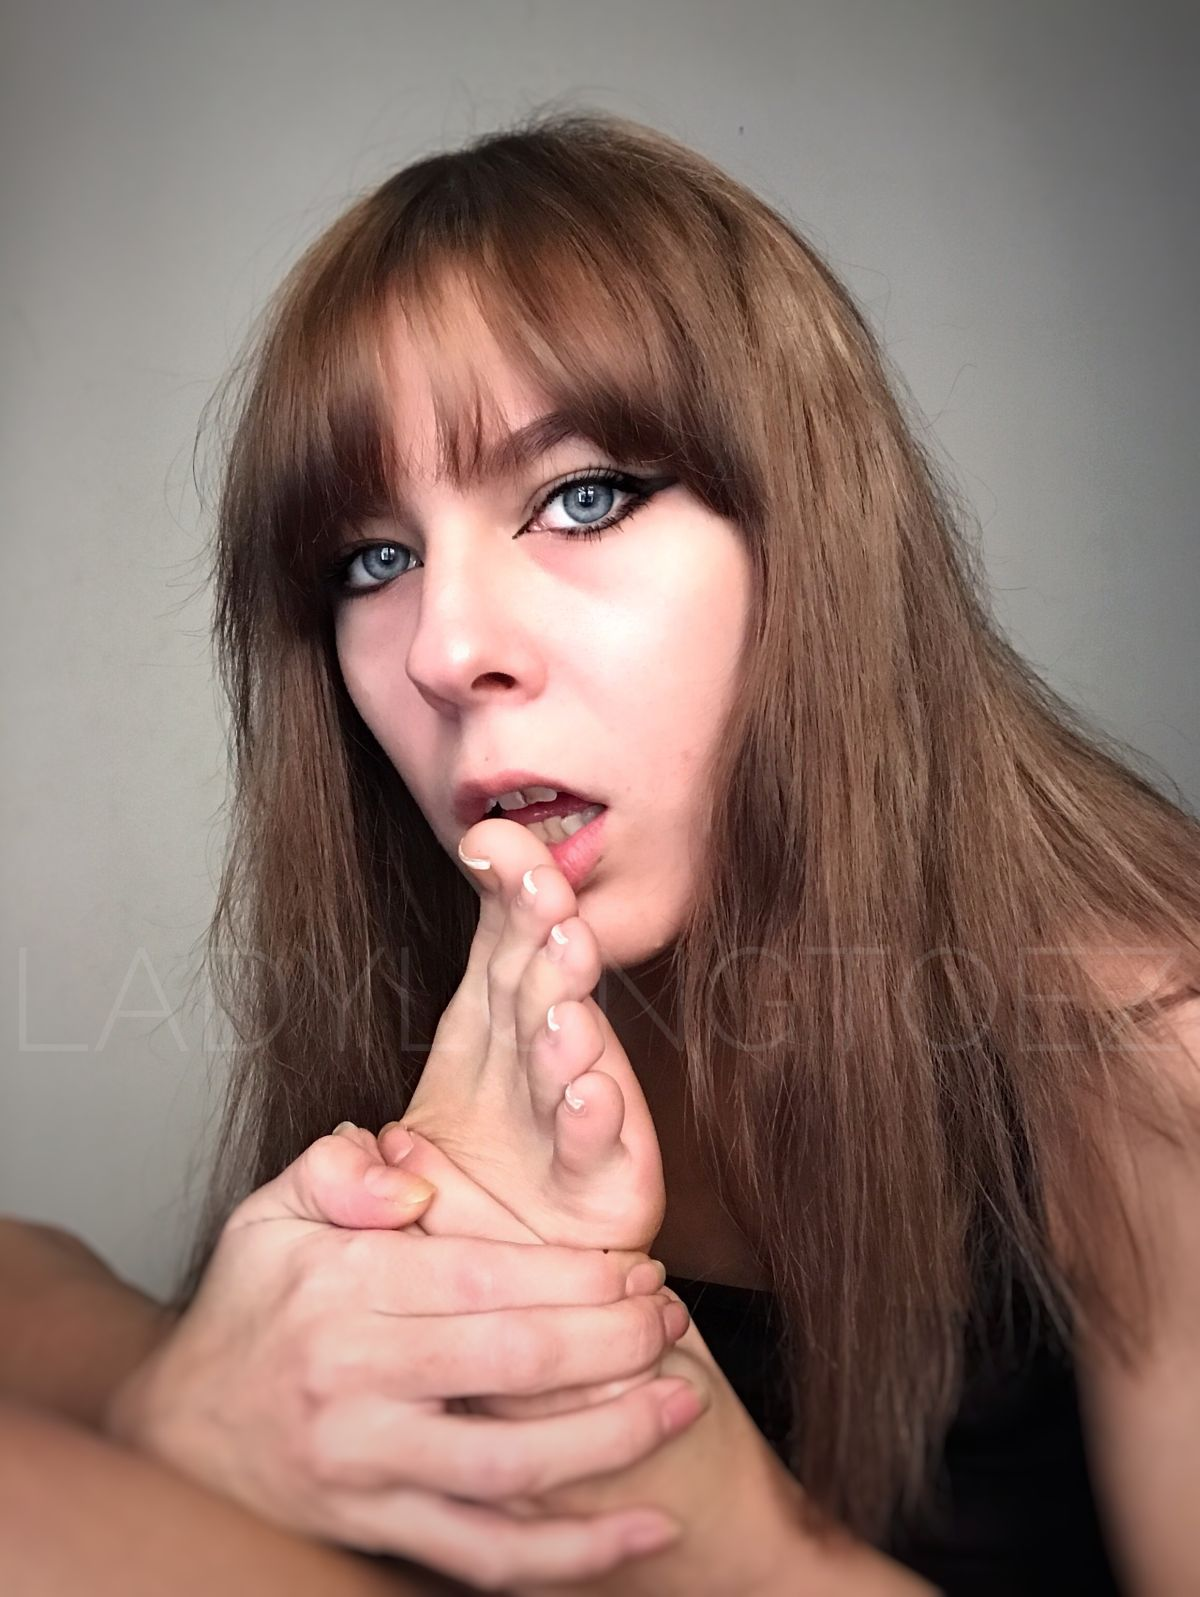 Free nudes of Lady Long Toes onlyfans leaked